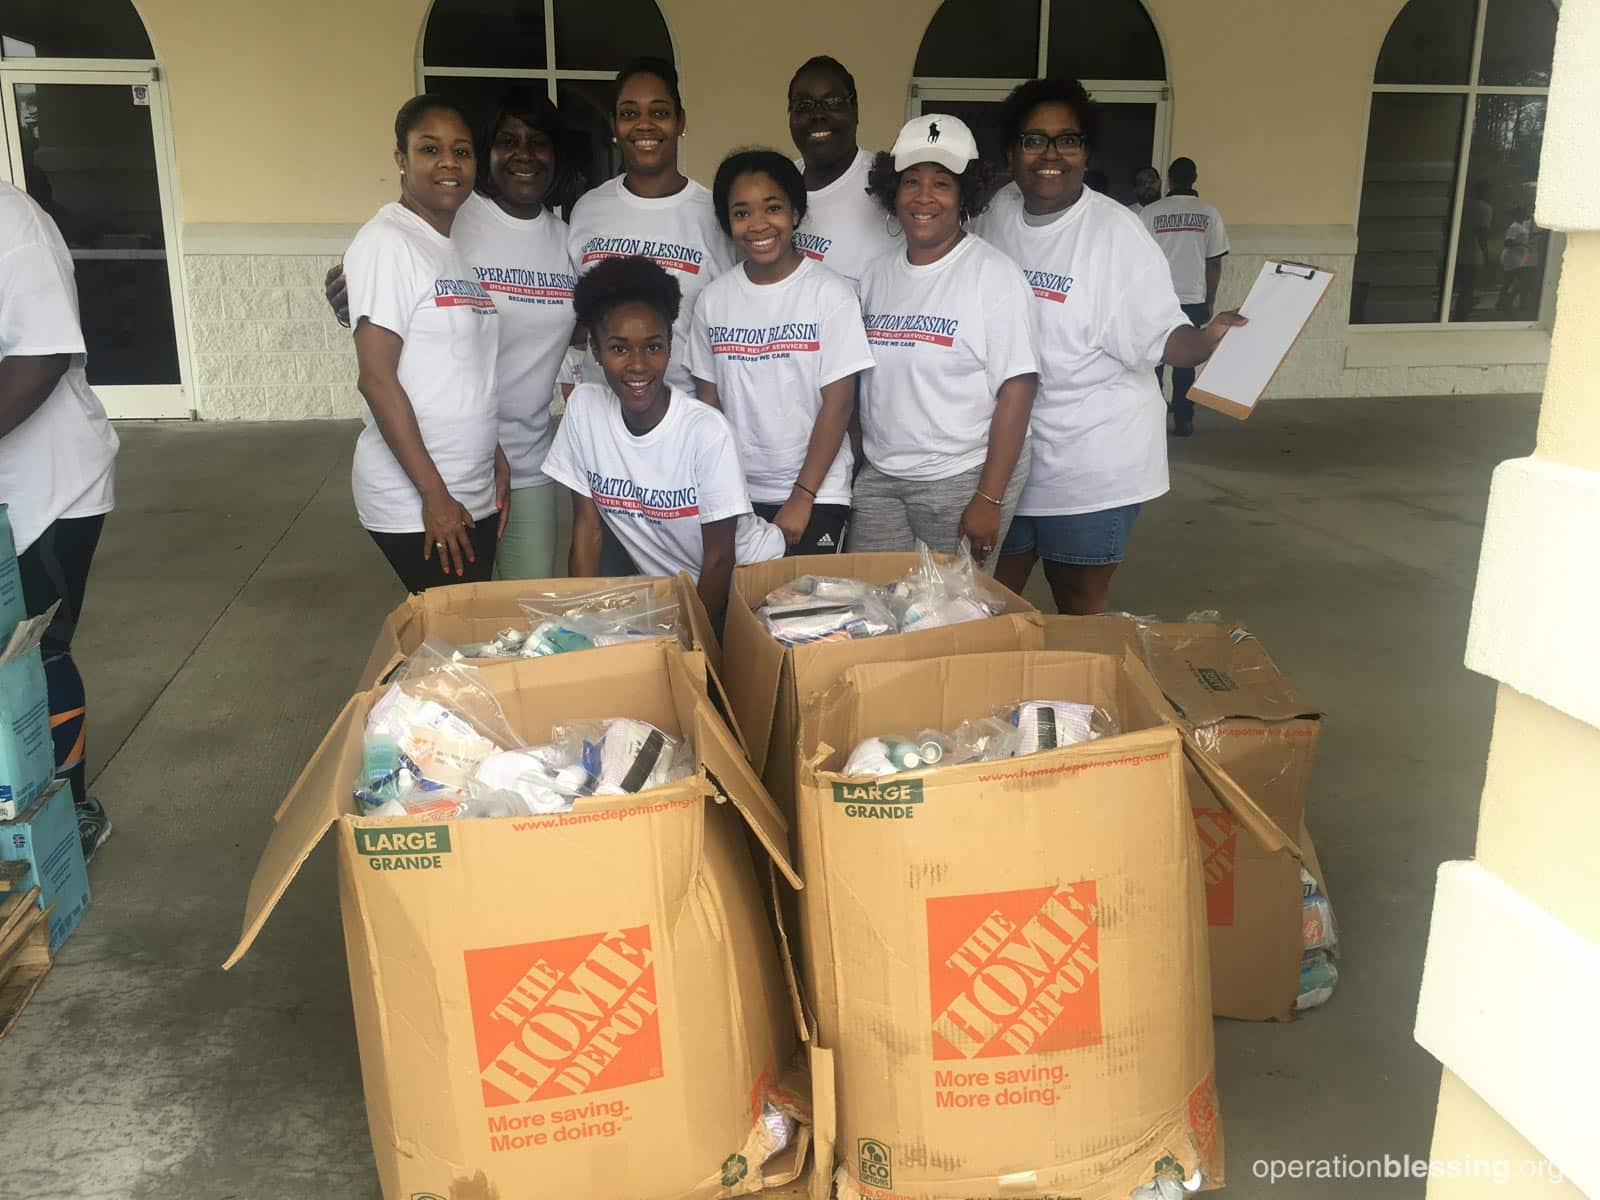 Volunteers with hygiene supplies for hurricane victims.